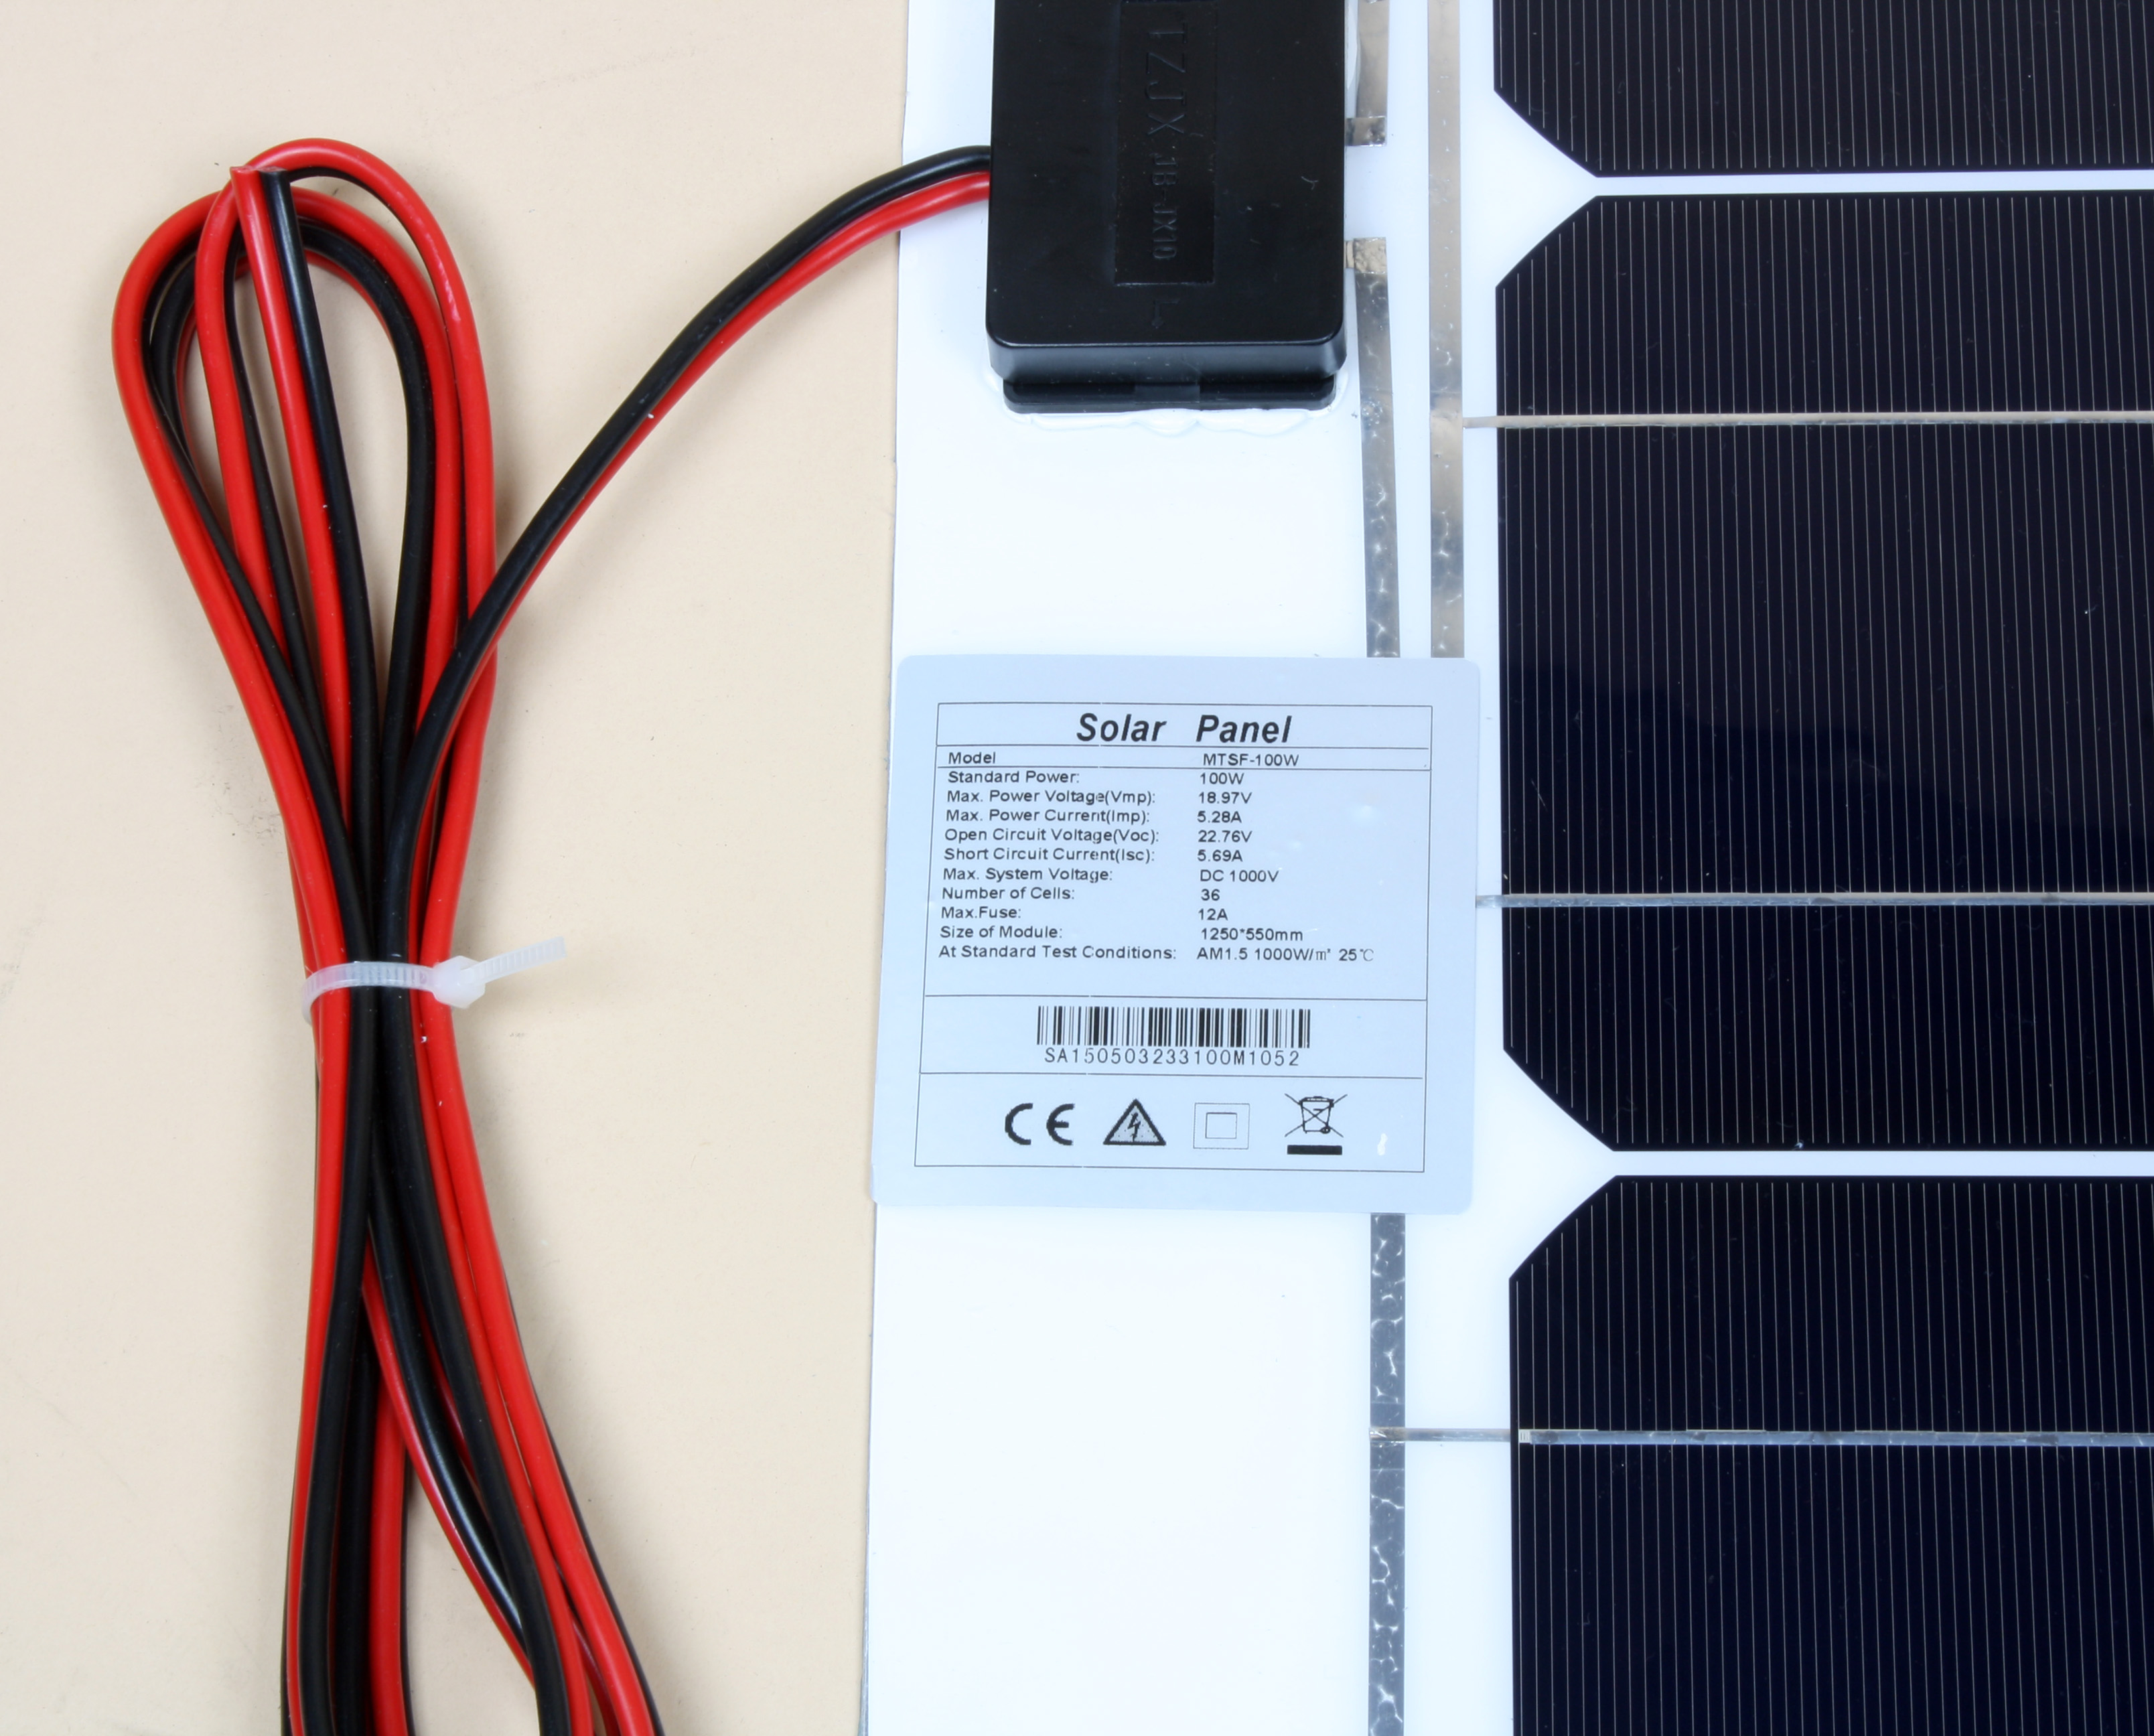 100w Semi Flexible Solar Panel Mono Crystalline Rv Camper Boat Yacht Circuit Current Isc And Short Open Voltage Undefined